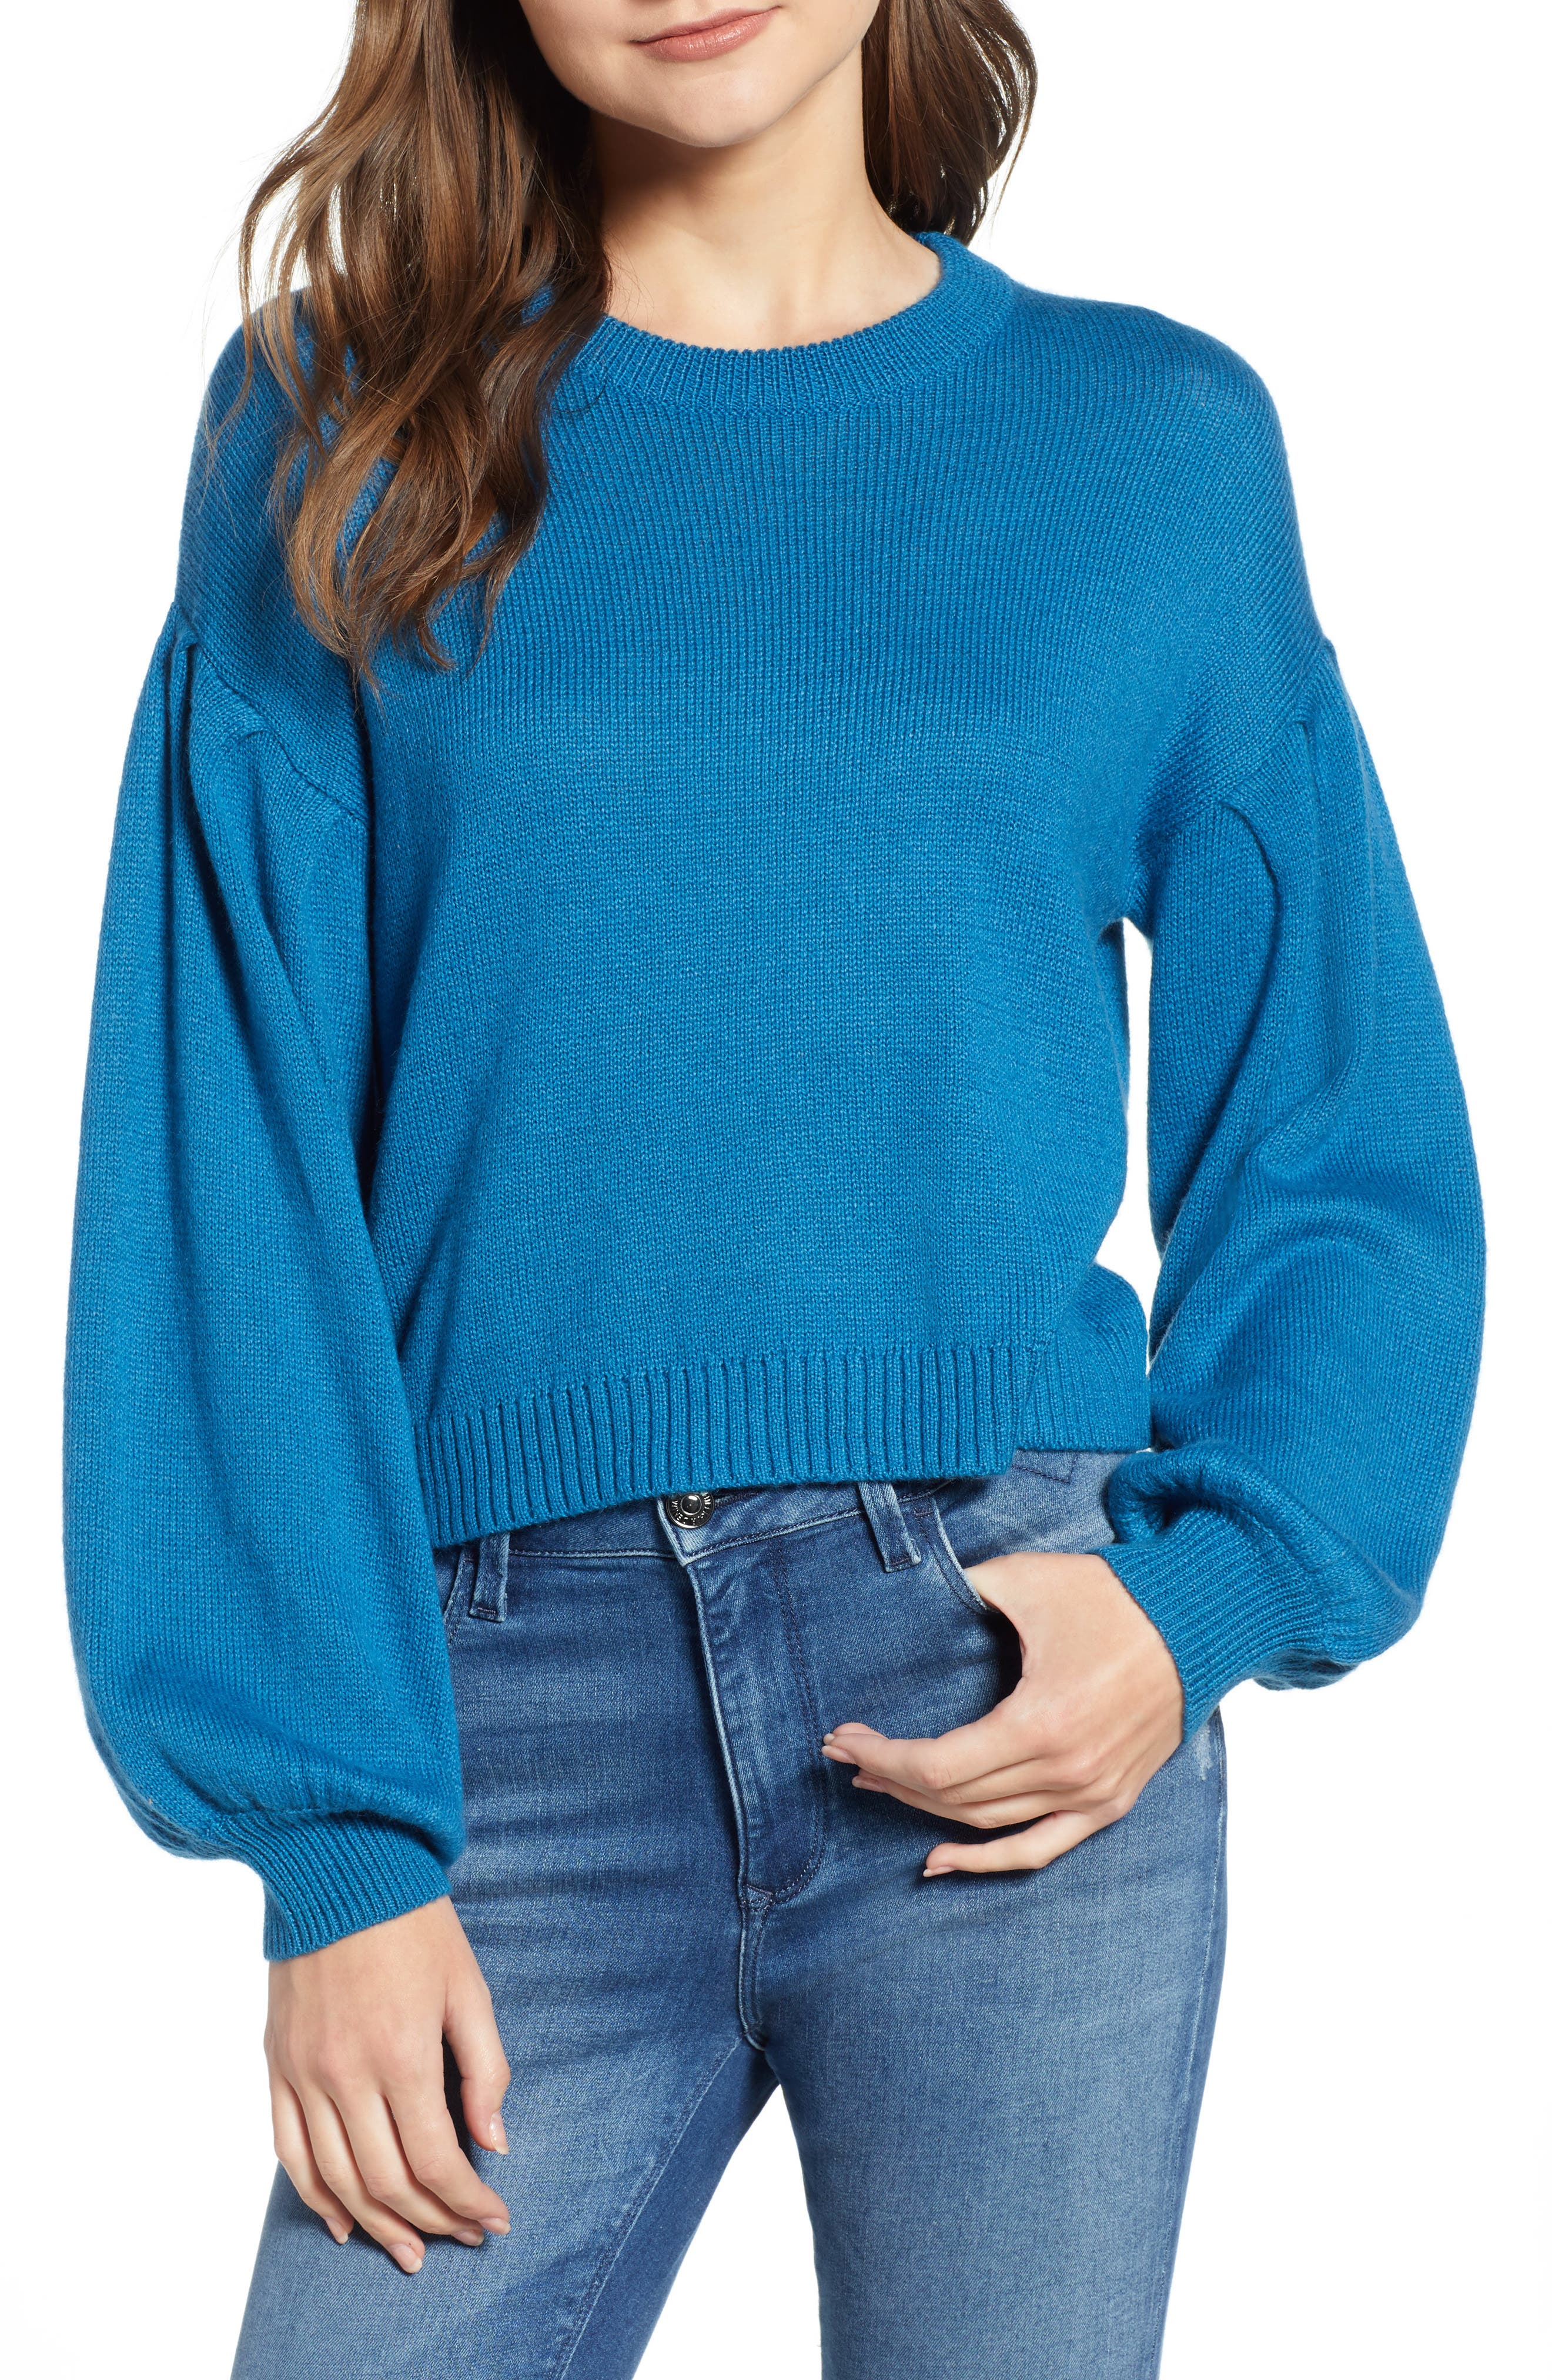 Blouson Sleeve Sweater,                             Main thumbnail 1, color,                             449